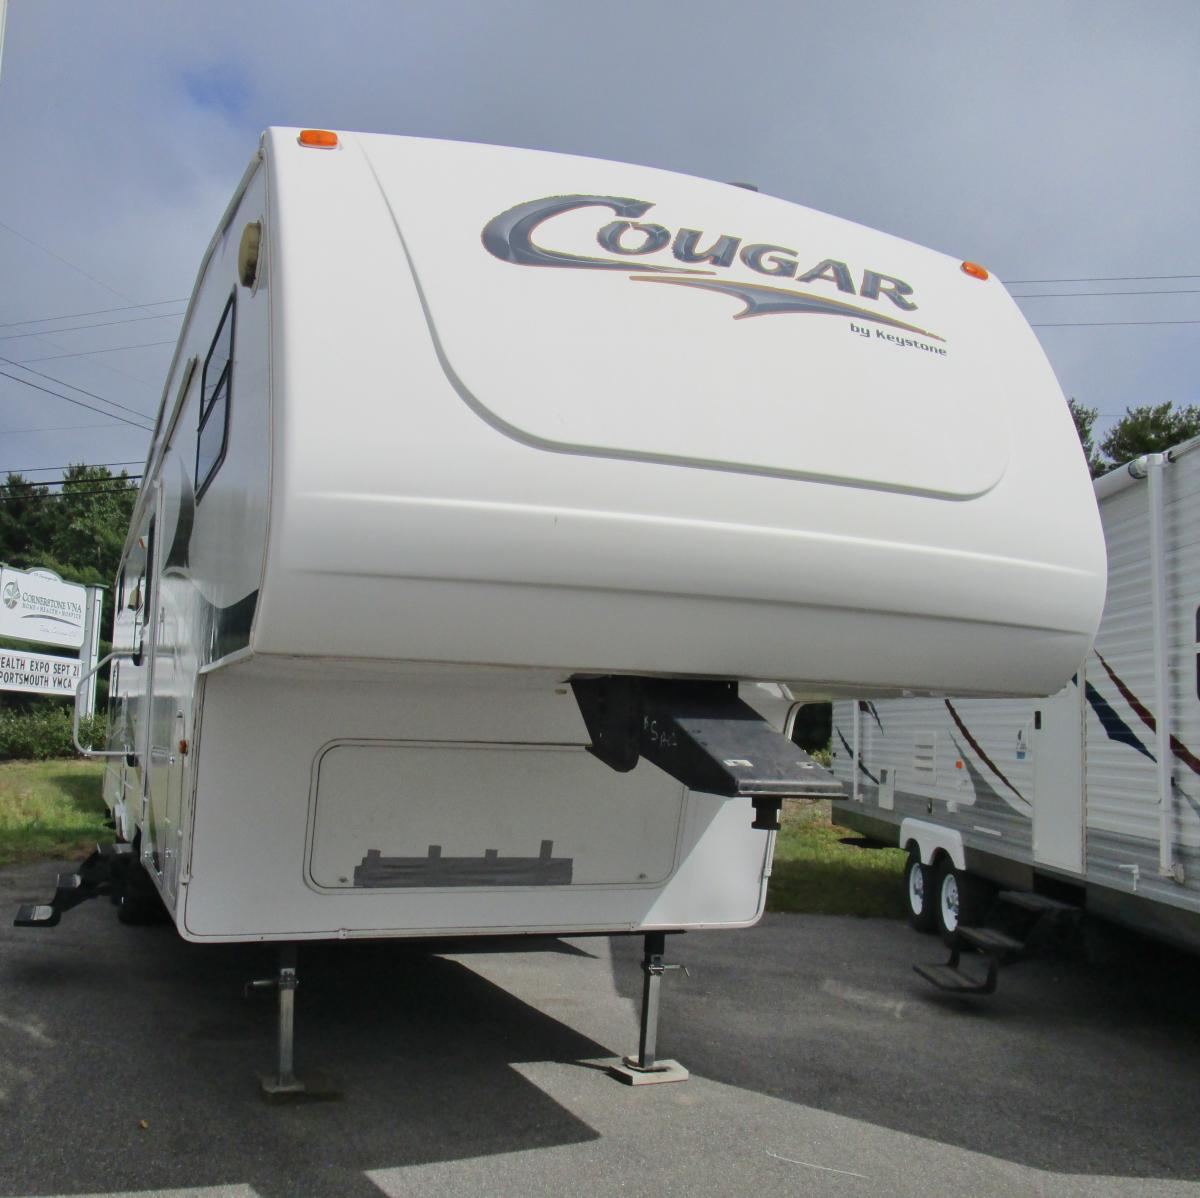 2006 COUGAR 314EFS 35FT/1 SLIDE WITH THREE BUNKS, FIFTH